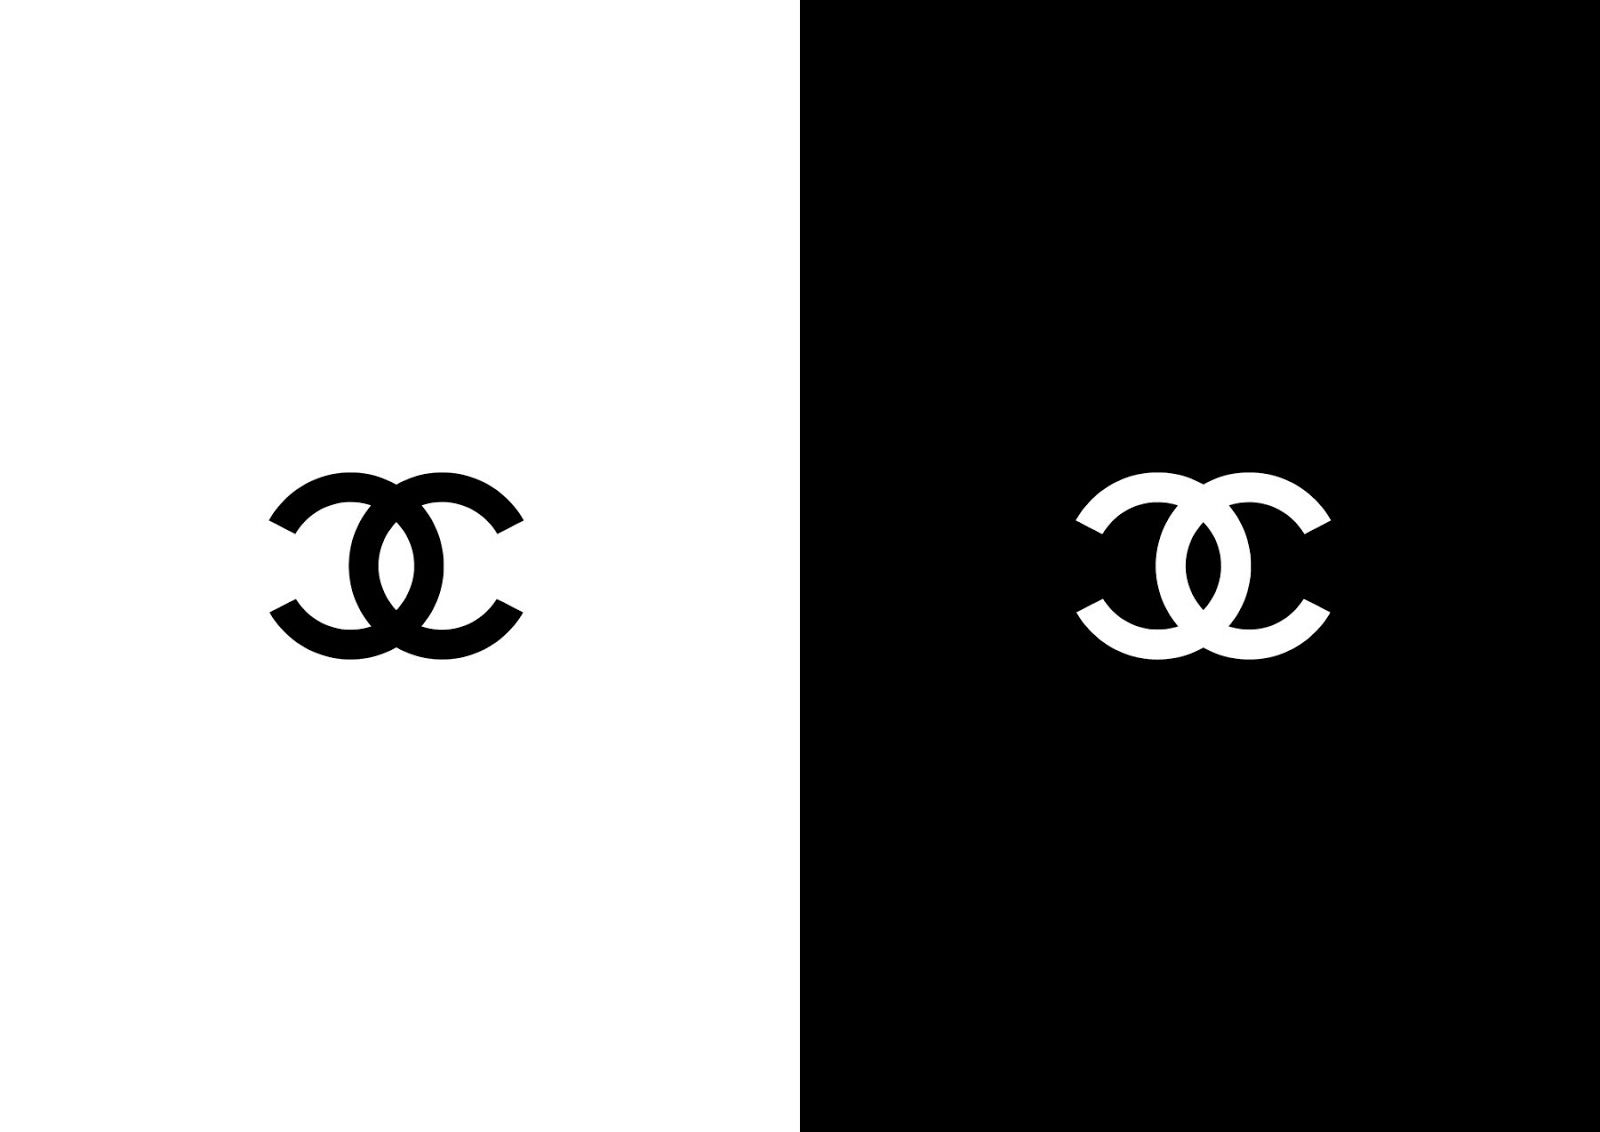 Coco Chanel Wallpapers Top Free Coco Chanel Backgrounds